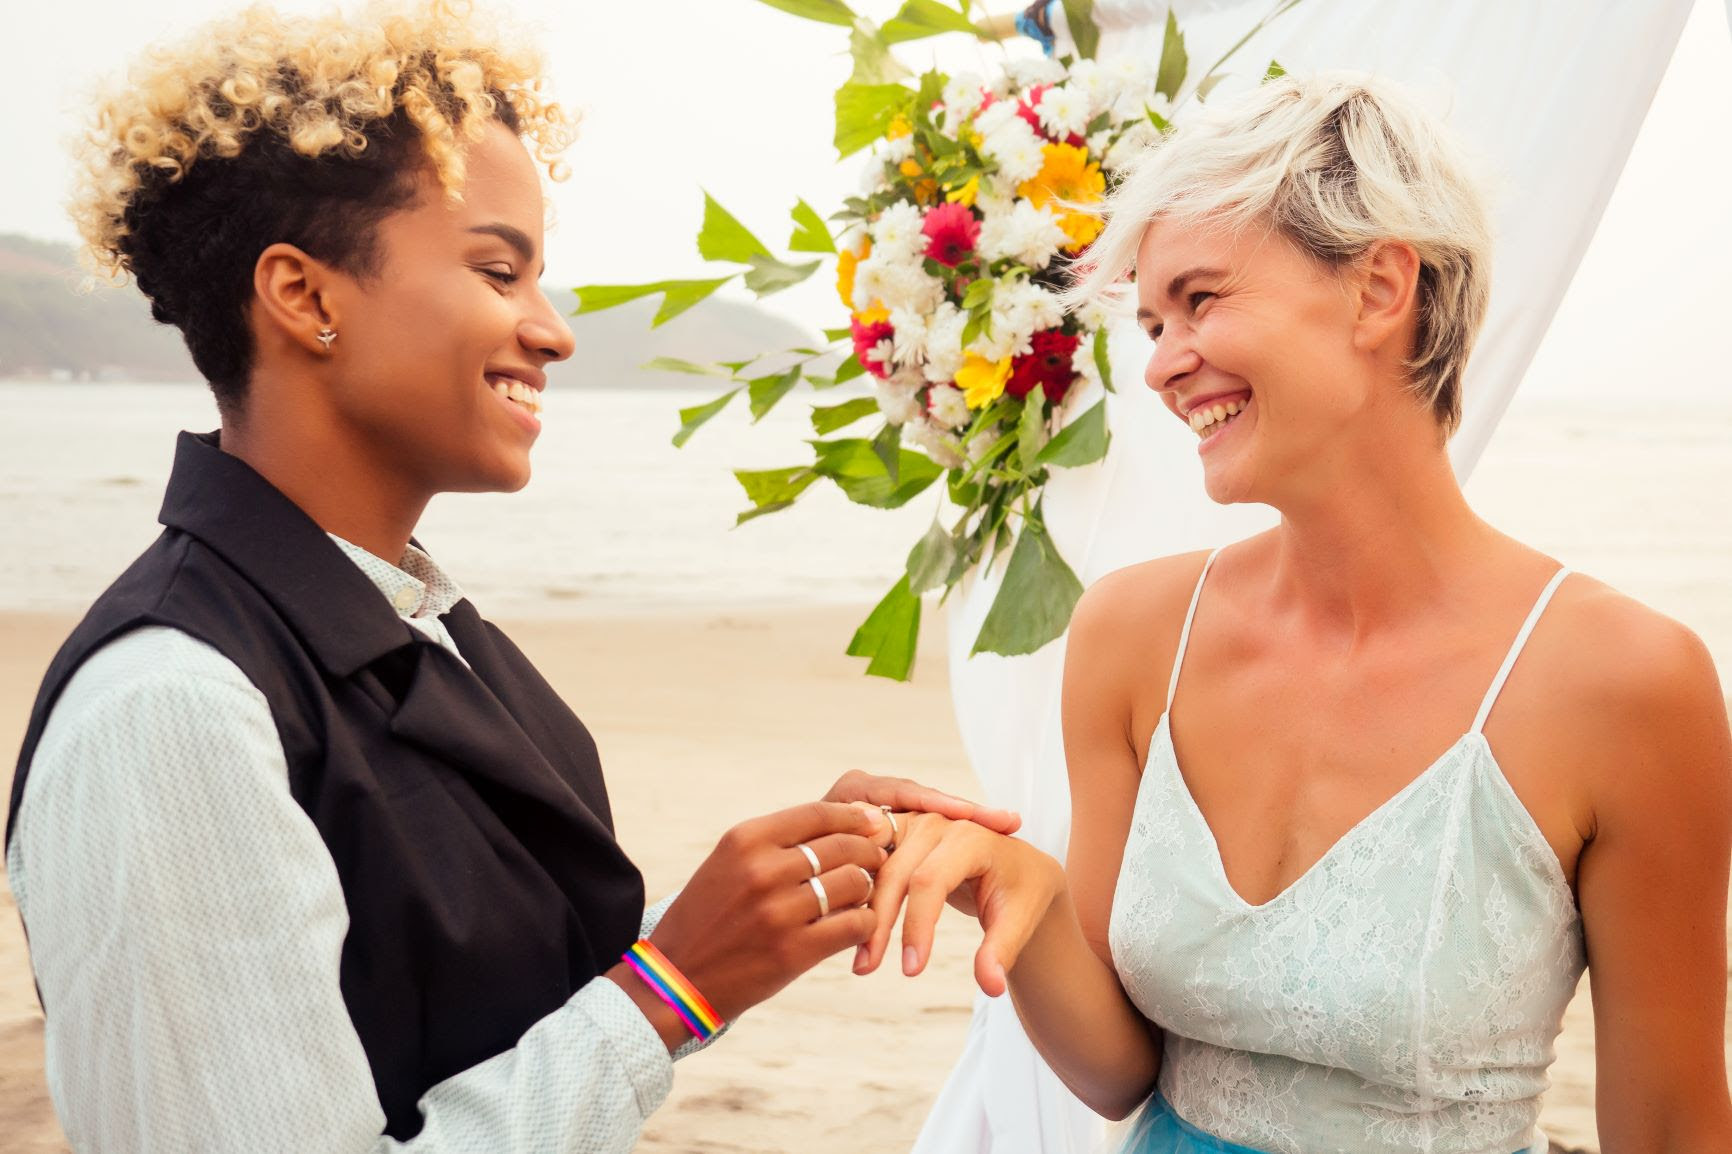 LGBTQA+ destination weddings and honeymoons